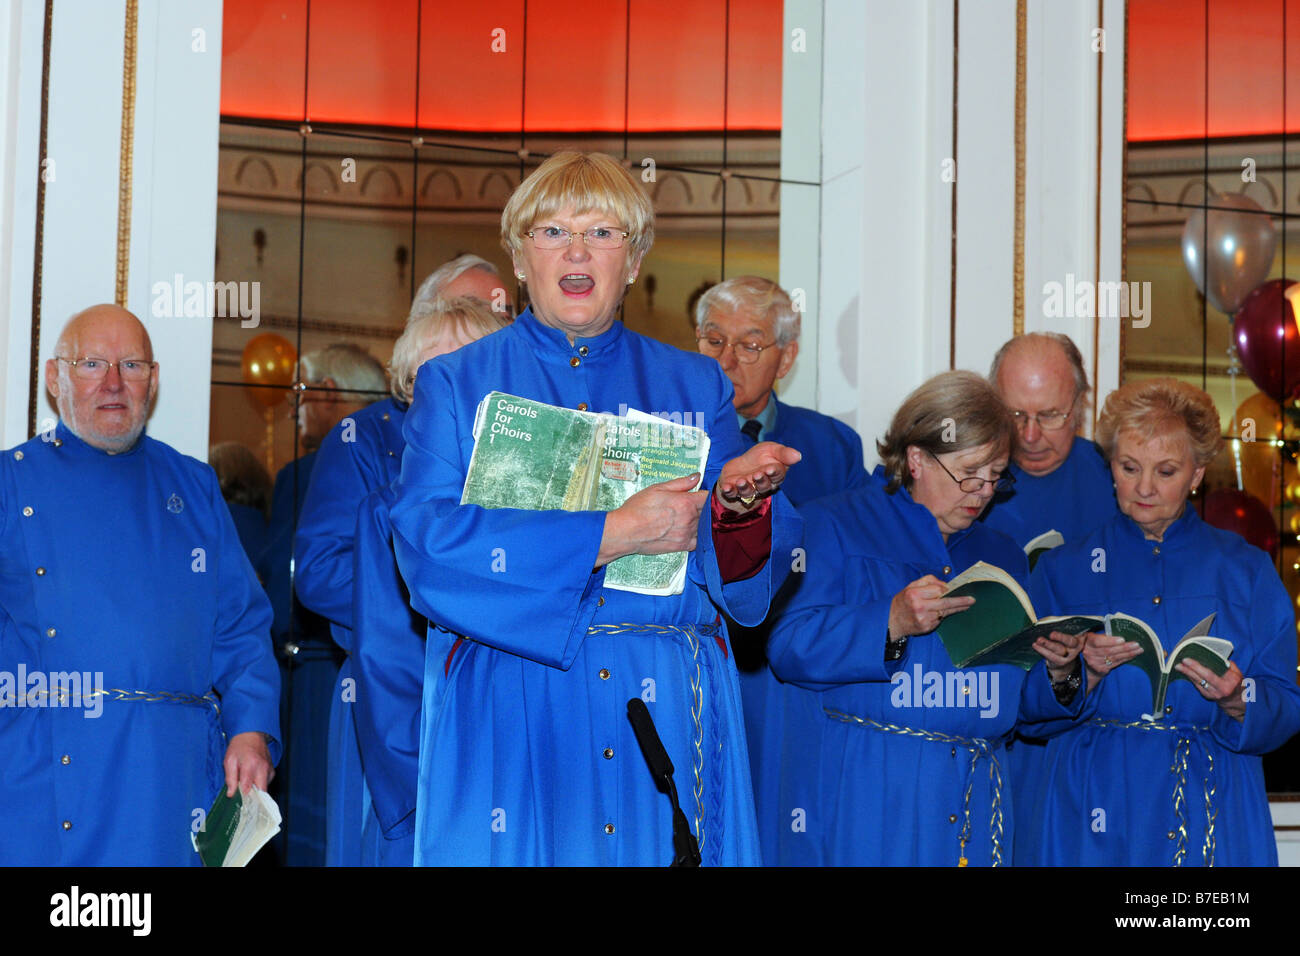 Bradford Choir sing carols at a Christmas Party West Yorkshire - Stock Image